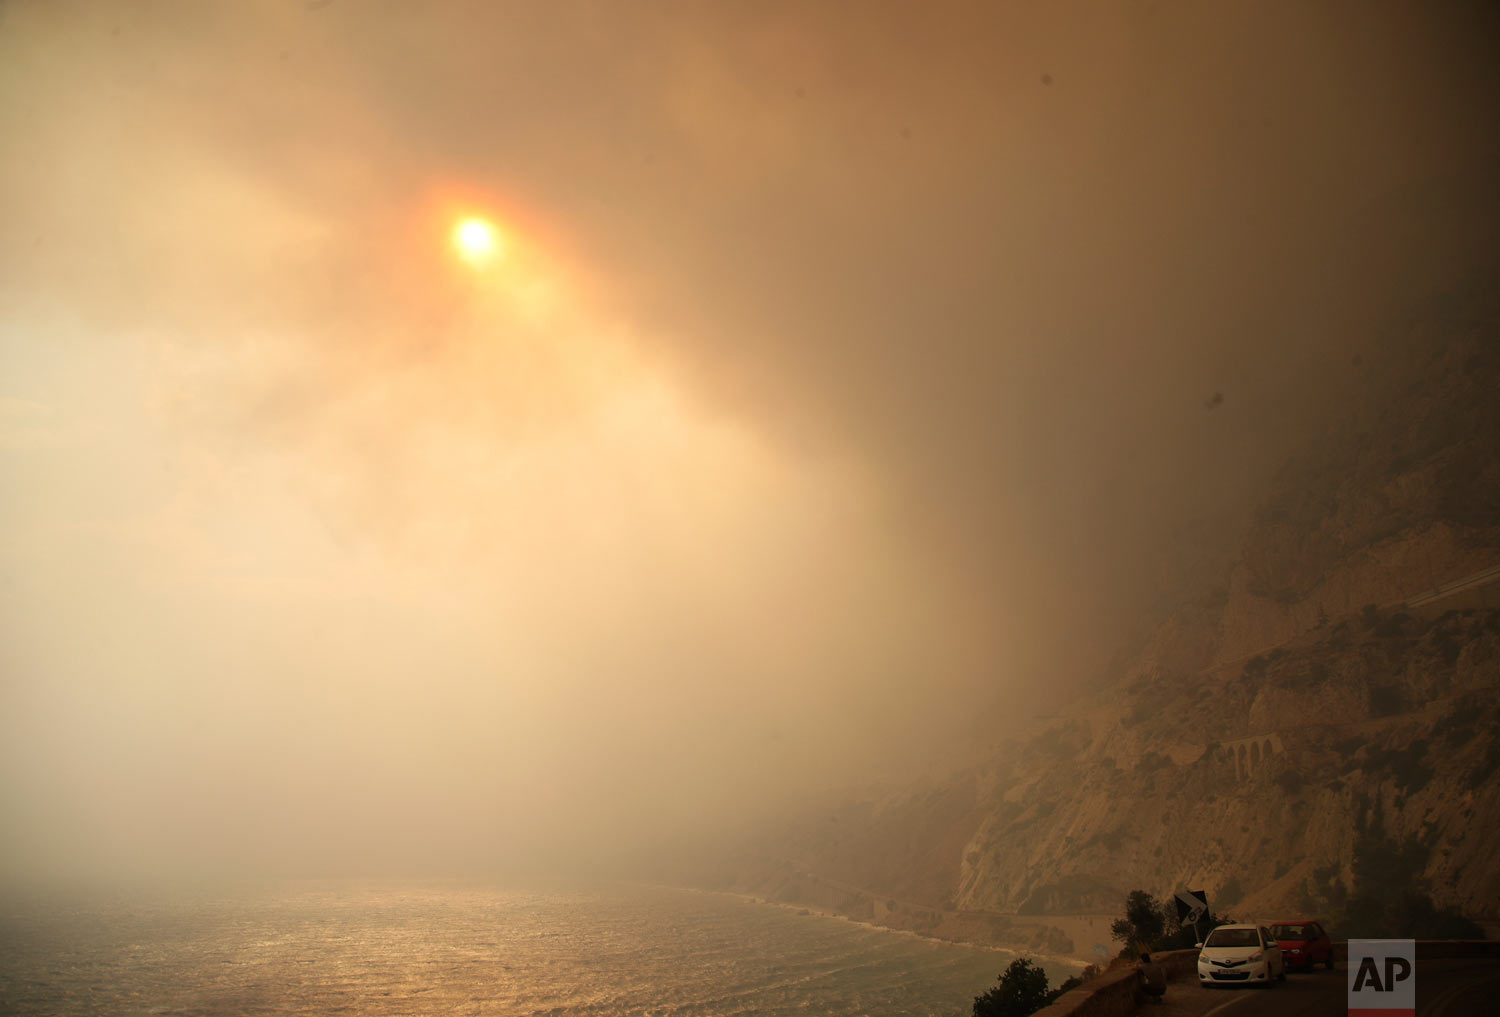 The sun breaks through a smoked-filled sky as cars drive on a road near Kineta, west of Athens, Monday, July 23, 2018. As of Friday, at least 86 people have been killed in the wildfires near the capital. (AP Photo/Thanassis Stavrakis)